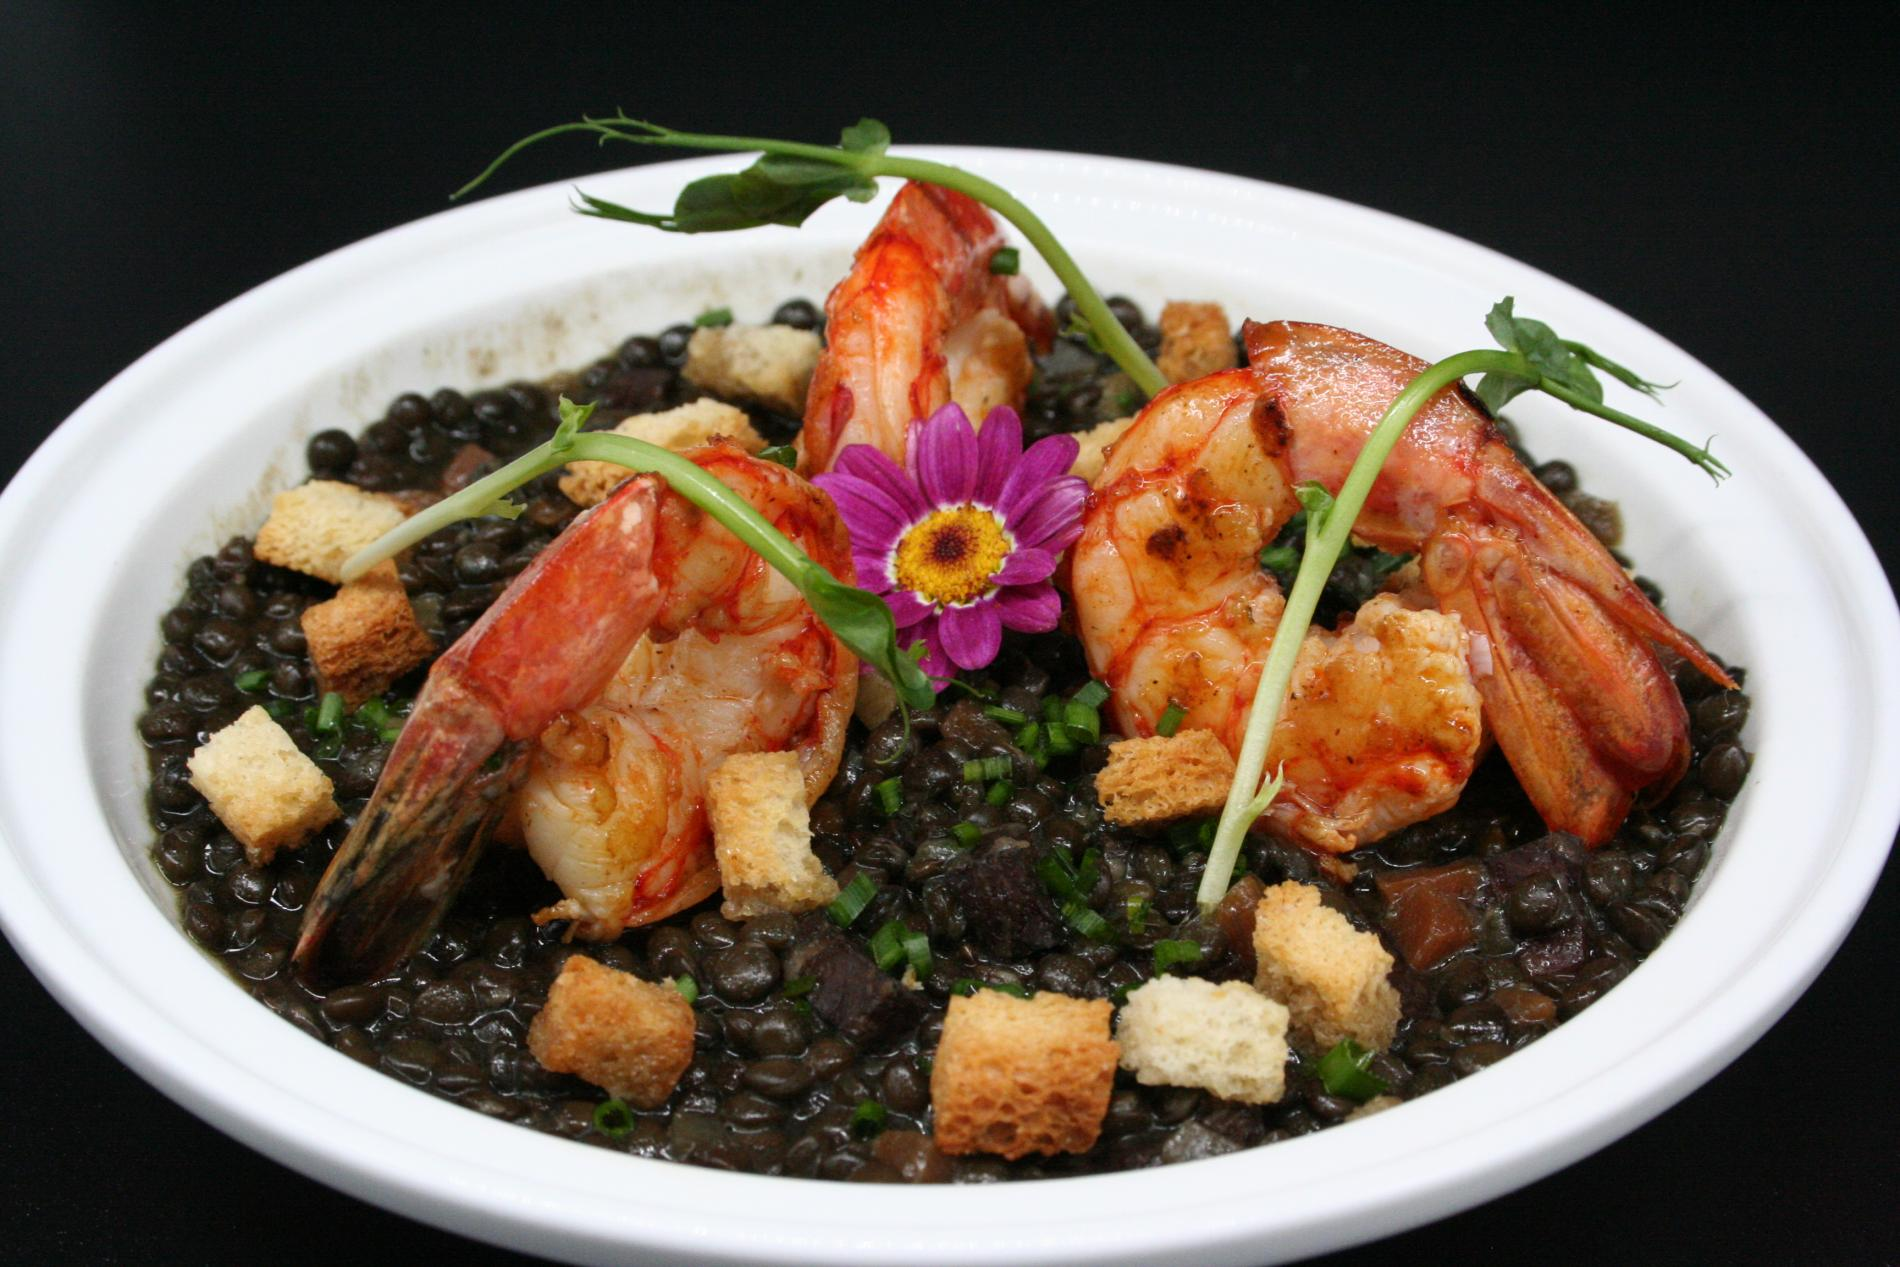 Prawns and organic lentils from the Perche